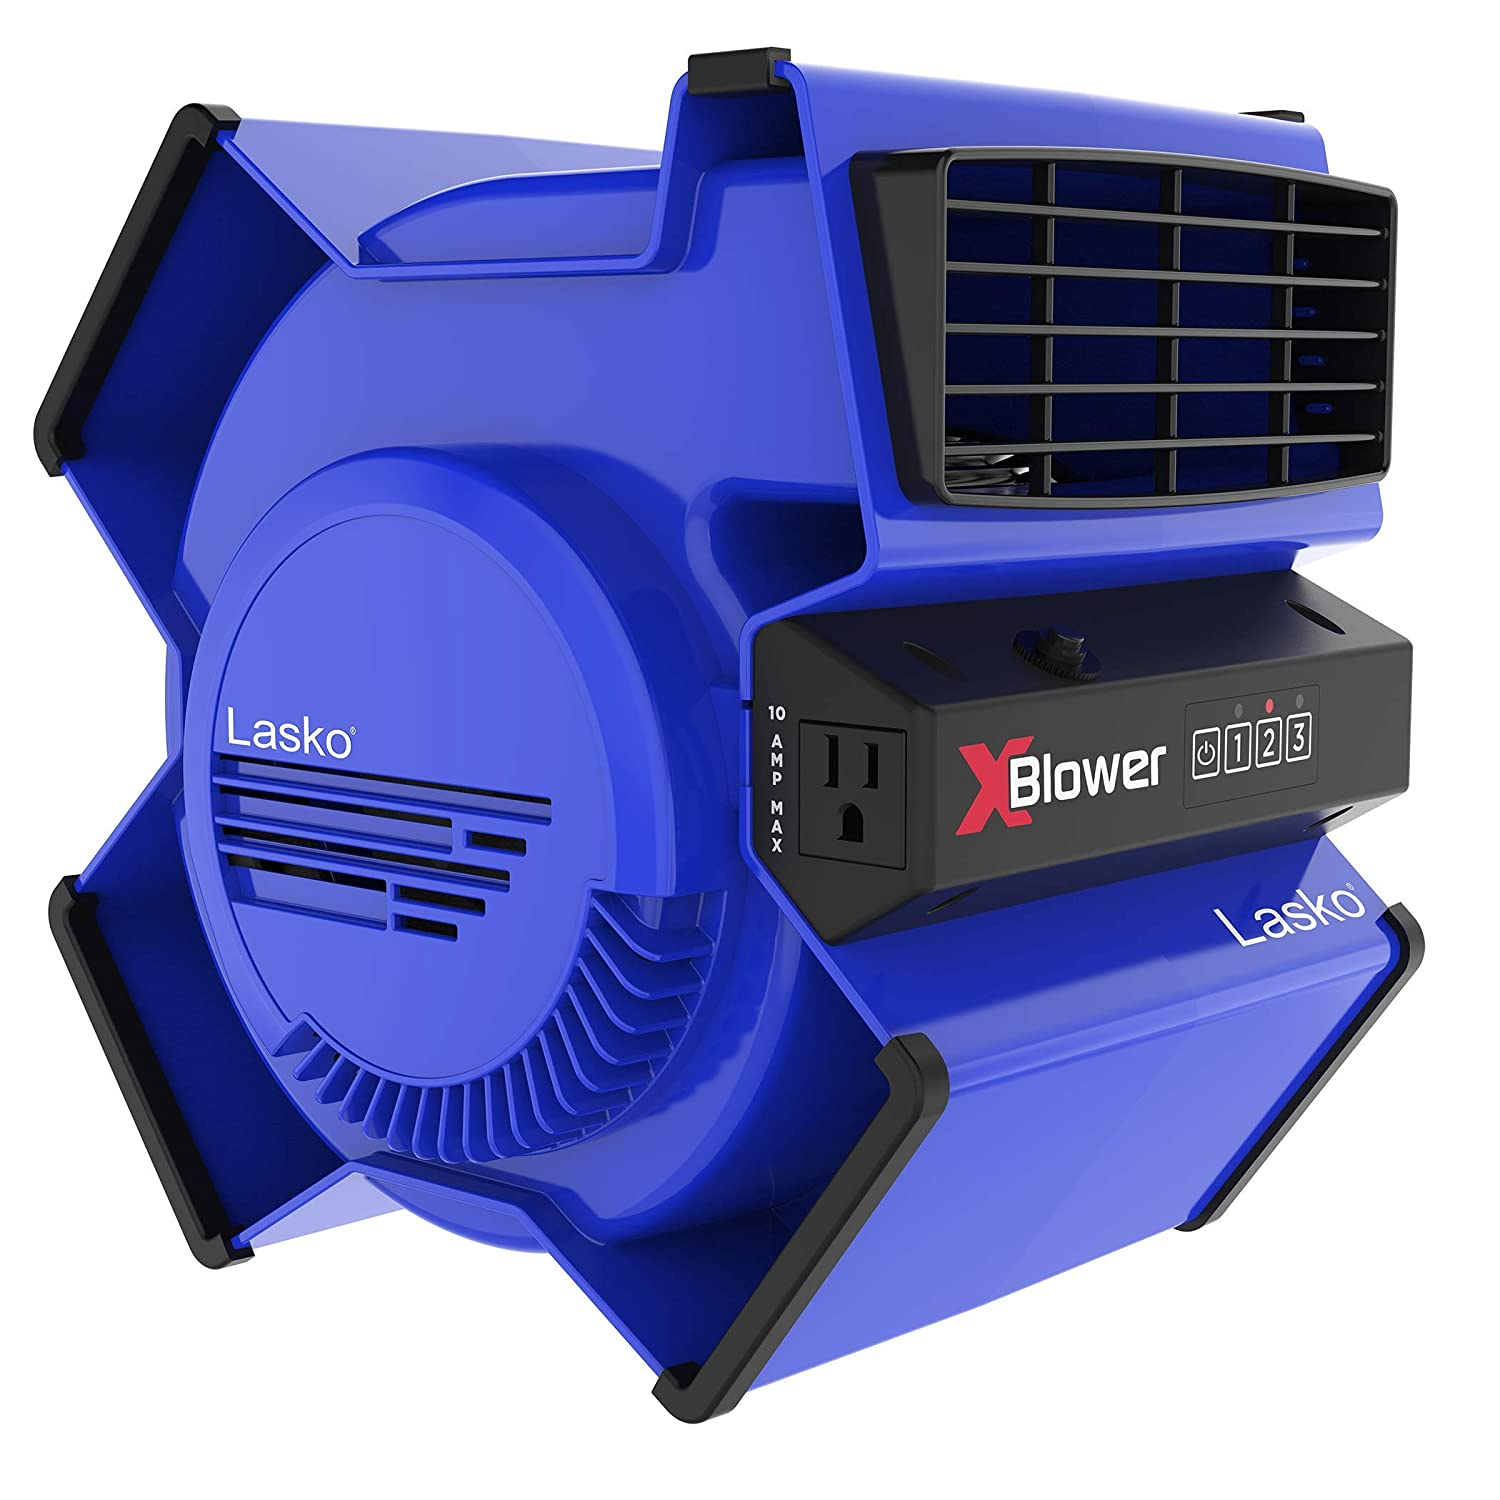 Lasko X12905 High Velocity X-Blower Utility Fan for Cooling, Ventilating, Exhausting and Drying at Home, Job Site and Work Shop, 12905